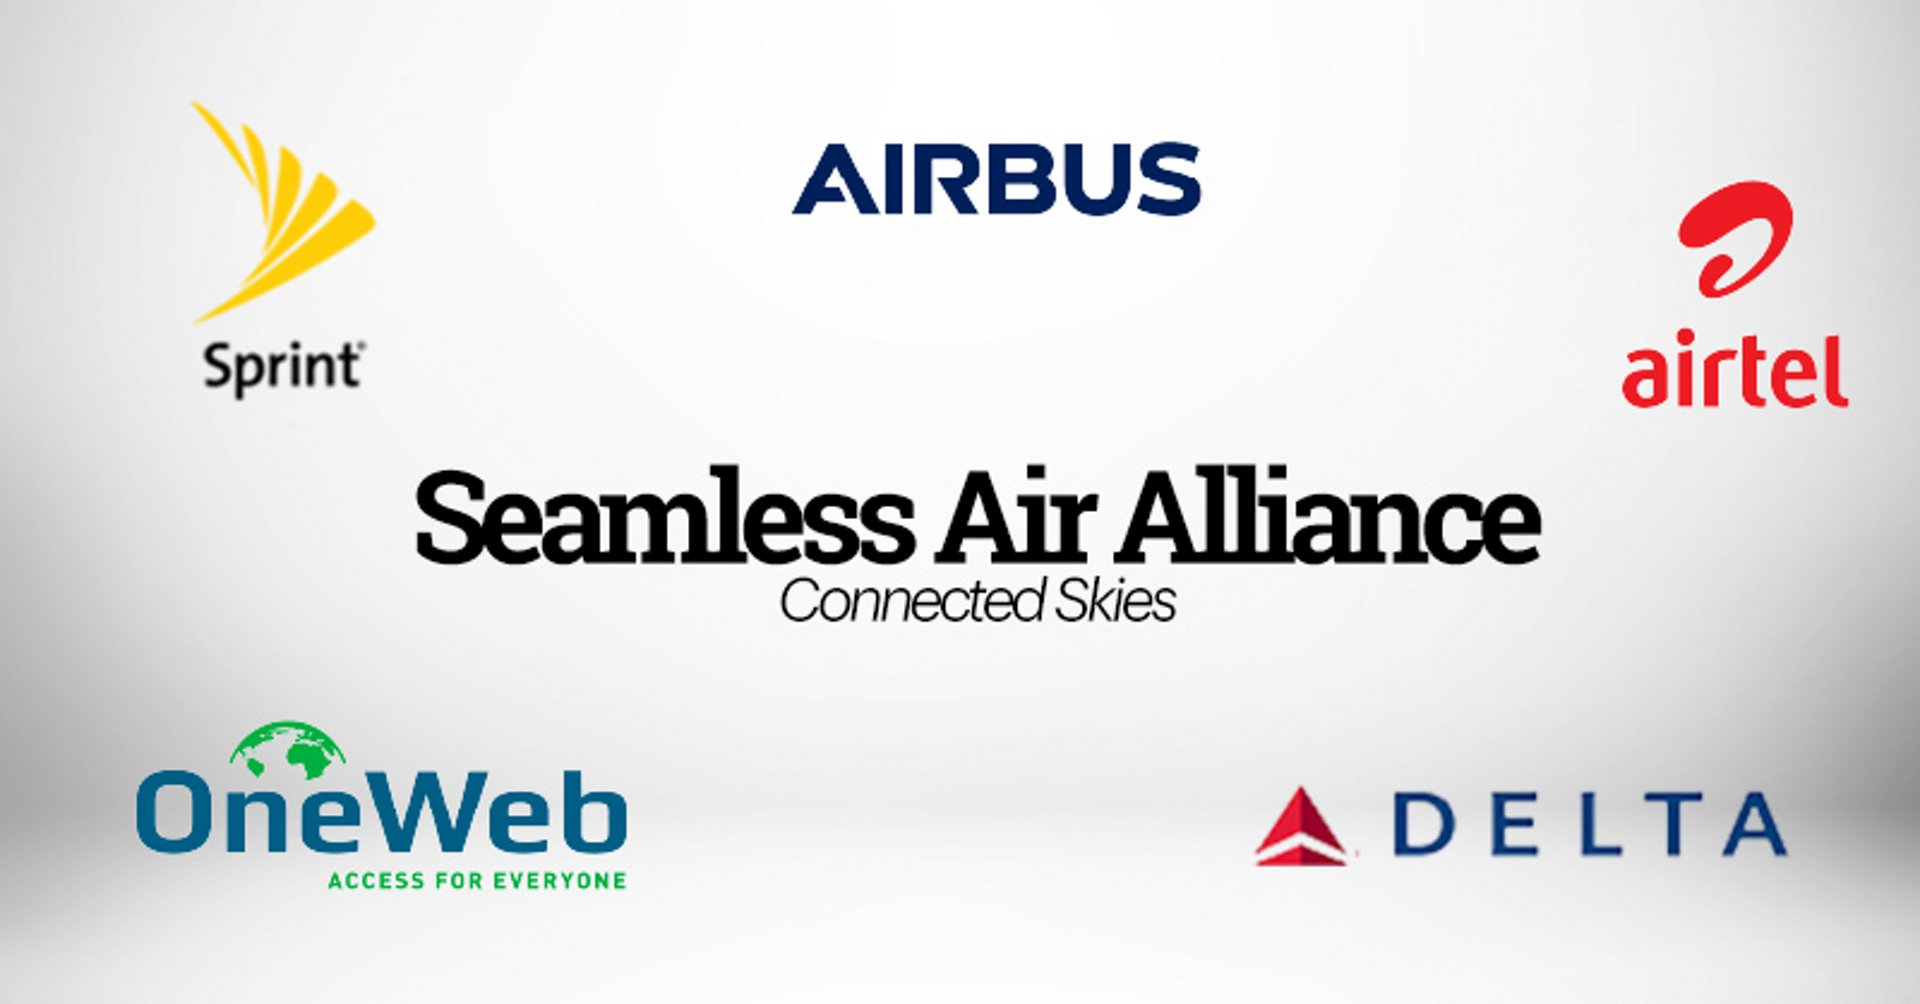 """Airbus, Delta, OneWeb, Sprint, and Bharti Airtel (""""Airtel"""") announce the formation of the Seamless Air Alliance – which will usher in a new era of innovation for airlines on all routes. By empowering member mobile operators to extend their services into airline cabins, the Seamless Air Alliance will allow them to continuously provide their customers – via satellite technology – with the same high speed, low latency connectivity from ground, to air and back again. It will also significantly reduce costs for everyone involved while creating a smooth, positive user experience."""